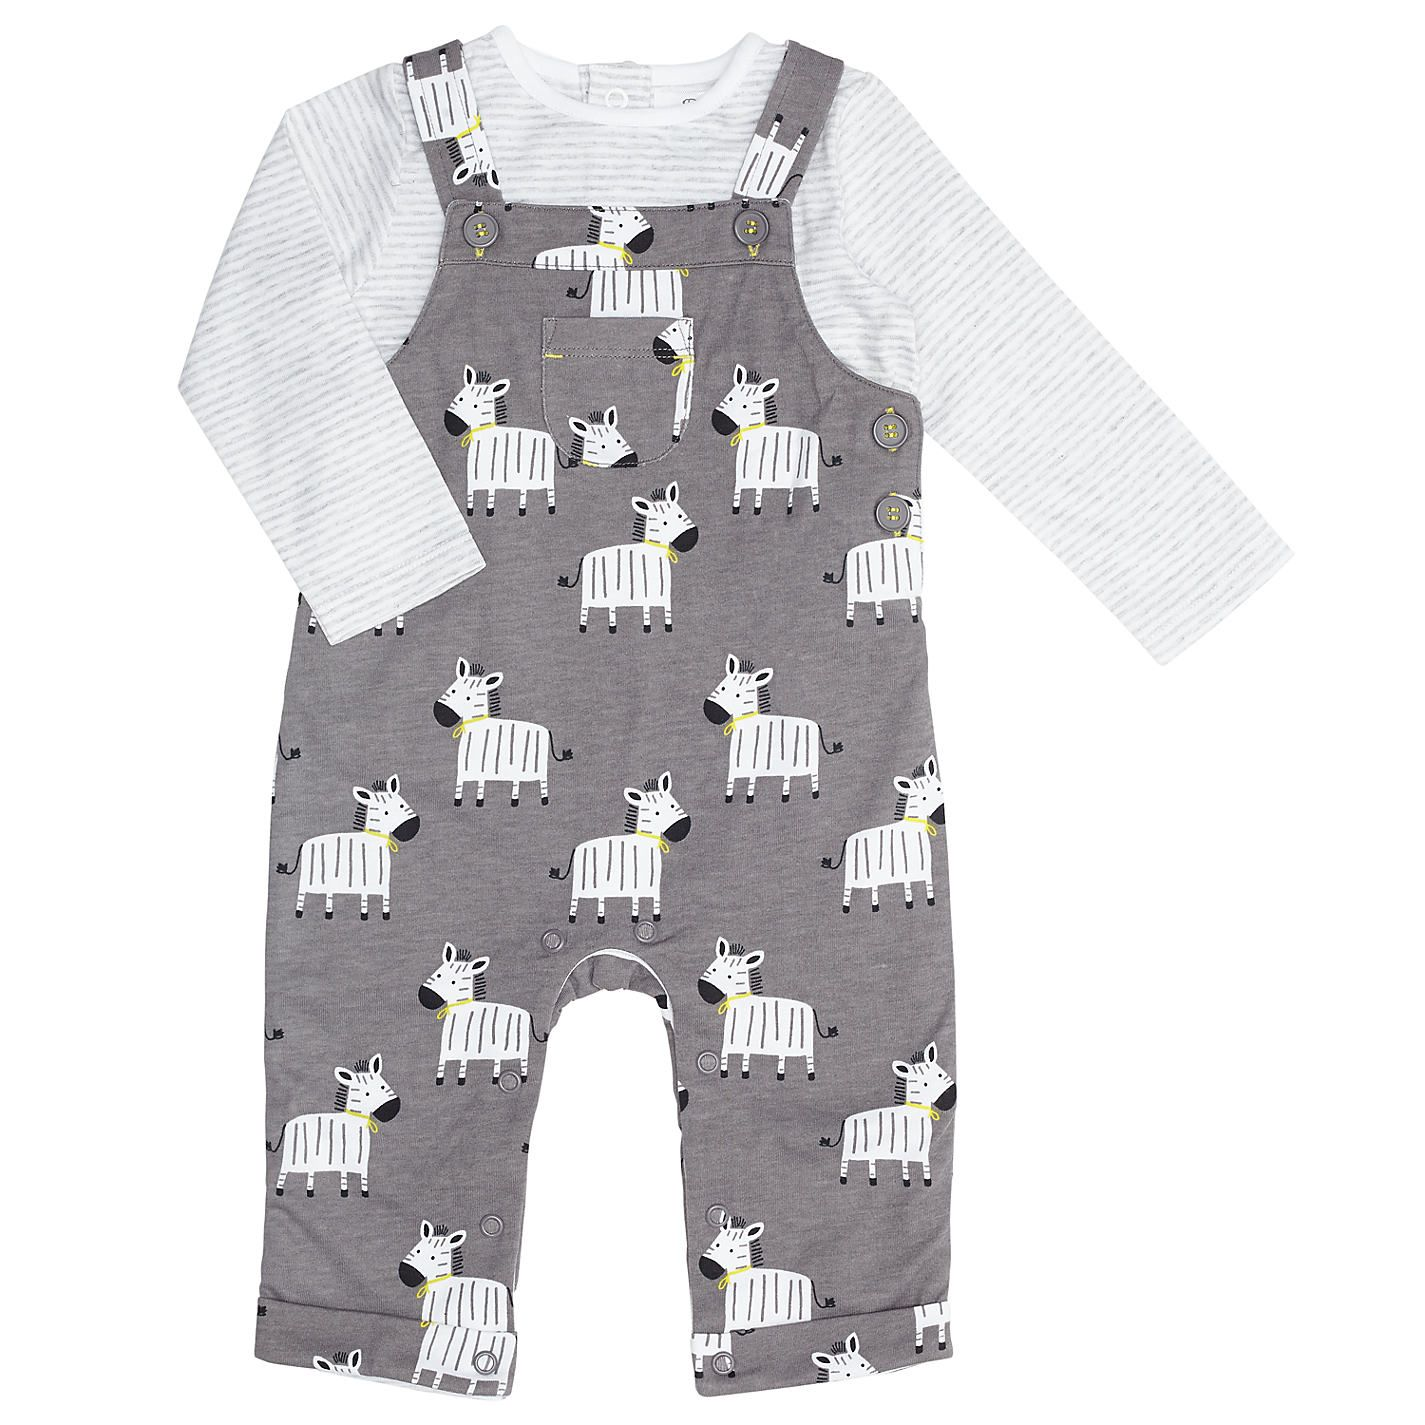 Buy John Lewis Baby Zebra Dungaree Set Charcoal from our Boys